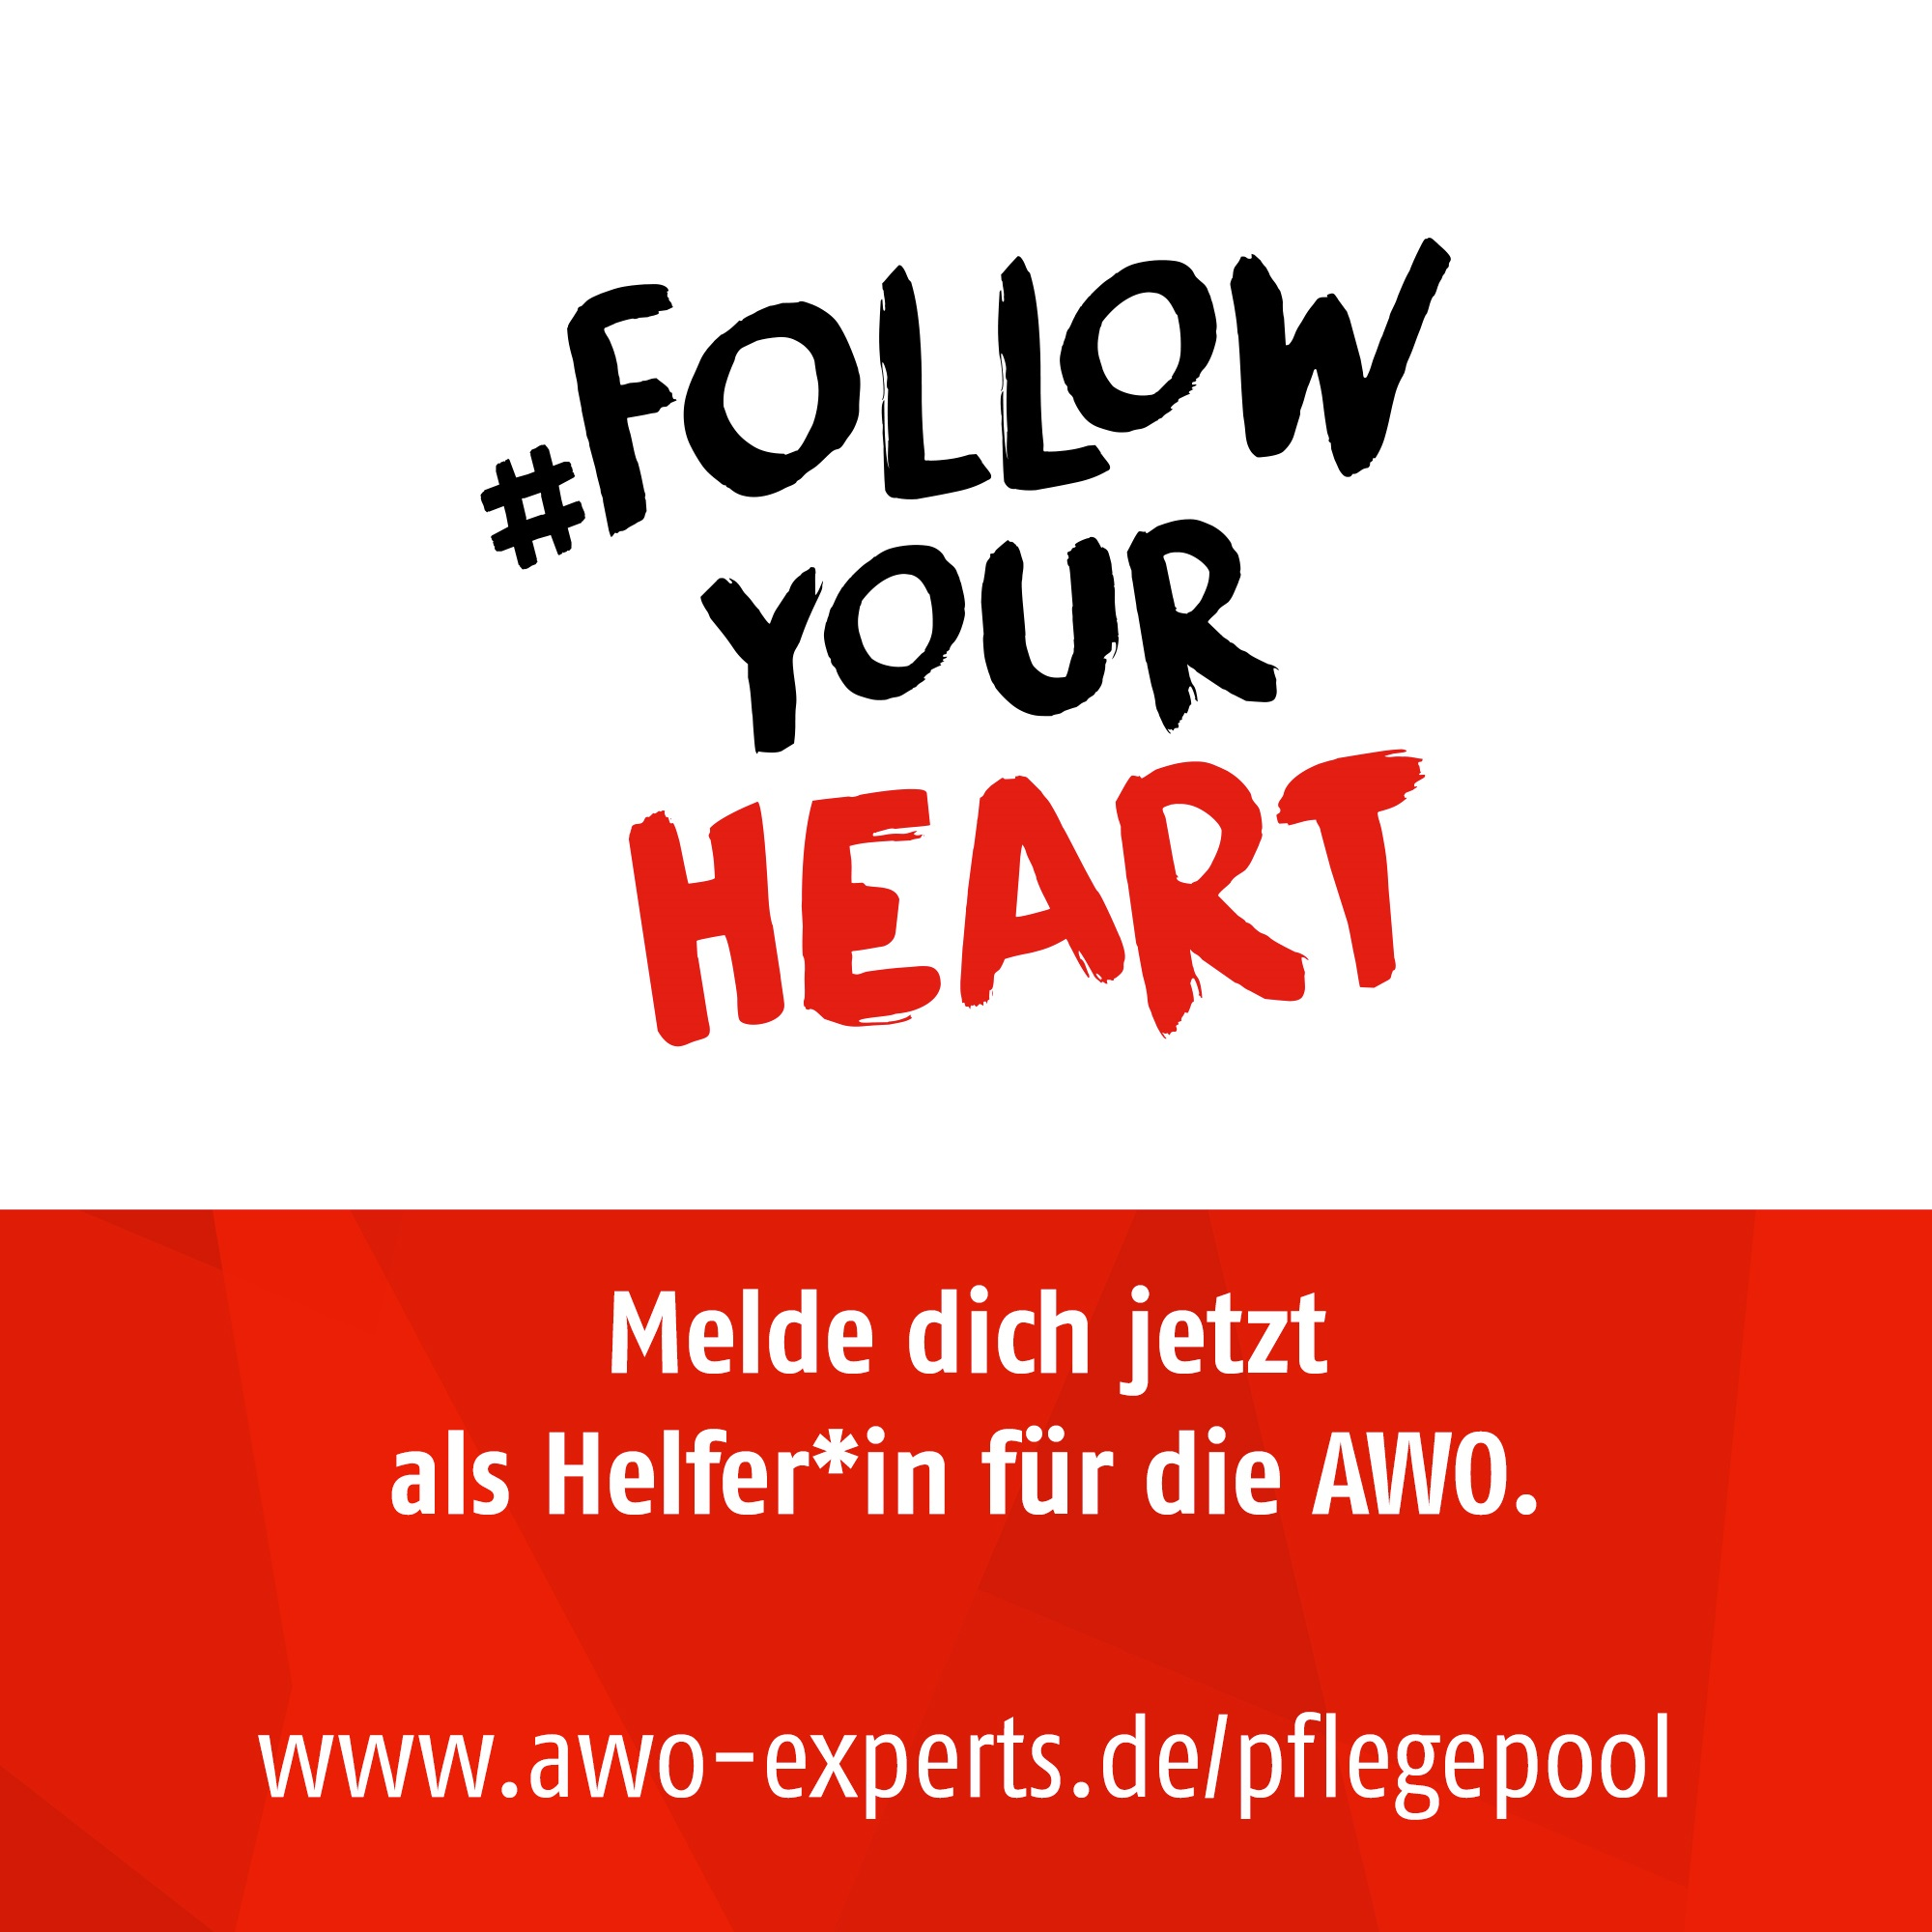 AWO Experts Pflegepool 1x1 07